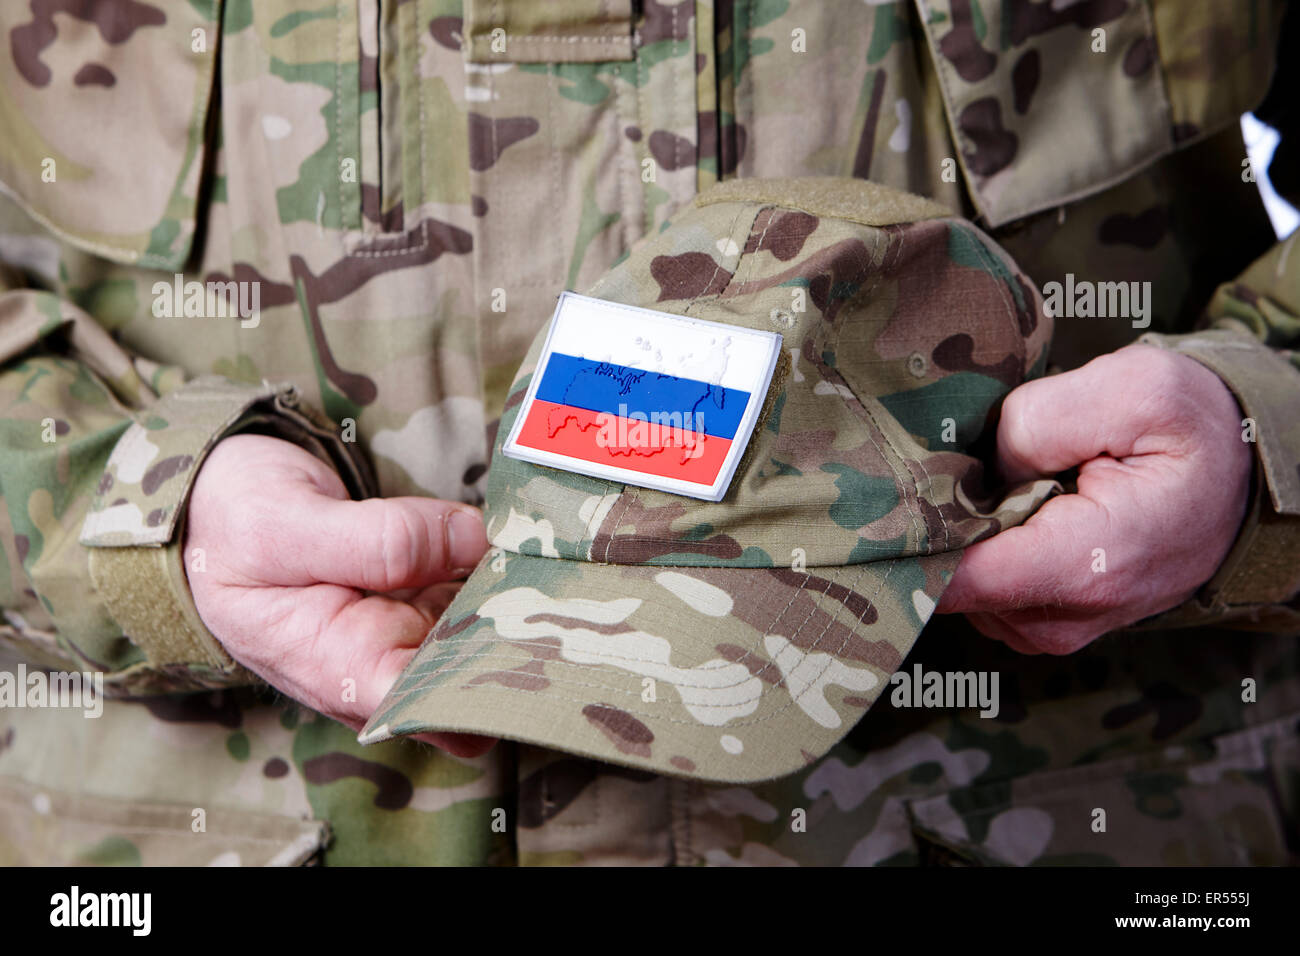 12c17141fb1 man in combat fatigues holding russian army camouflage hat - Stock Image